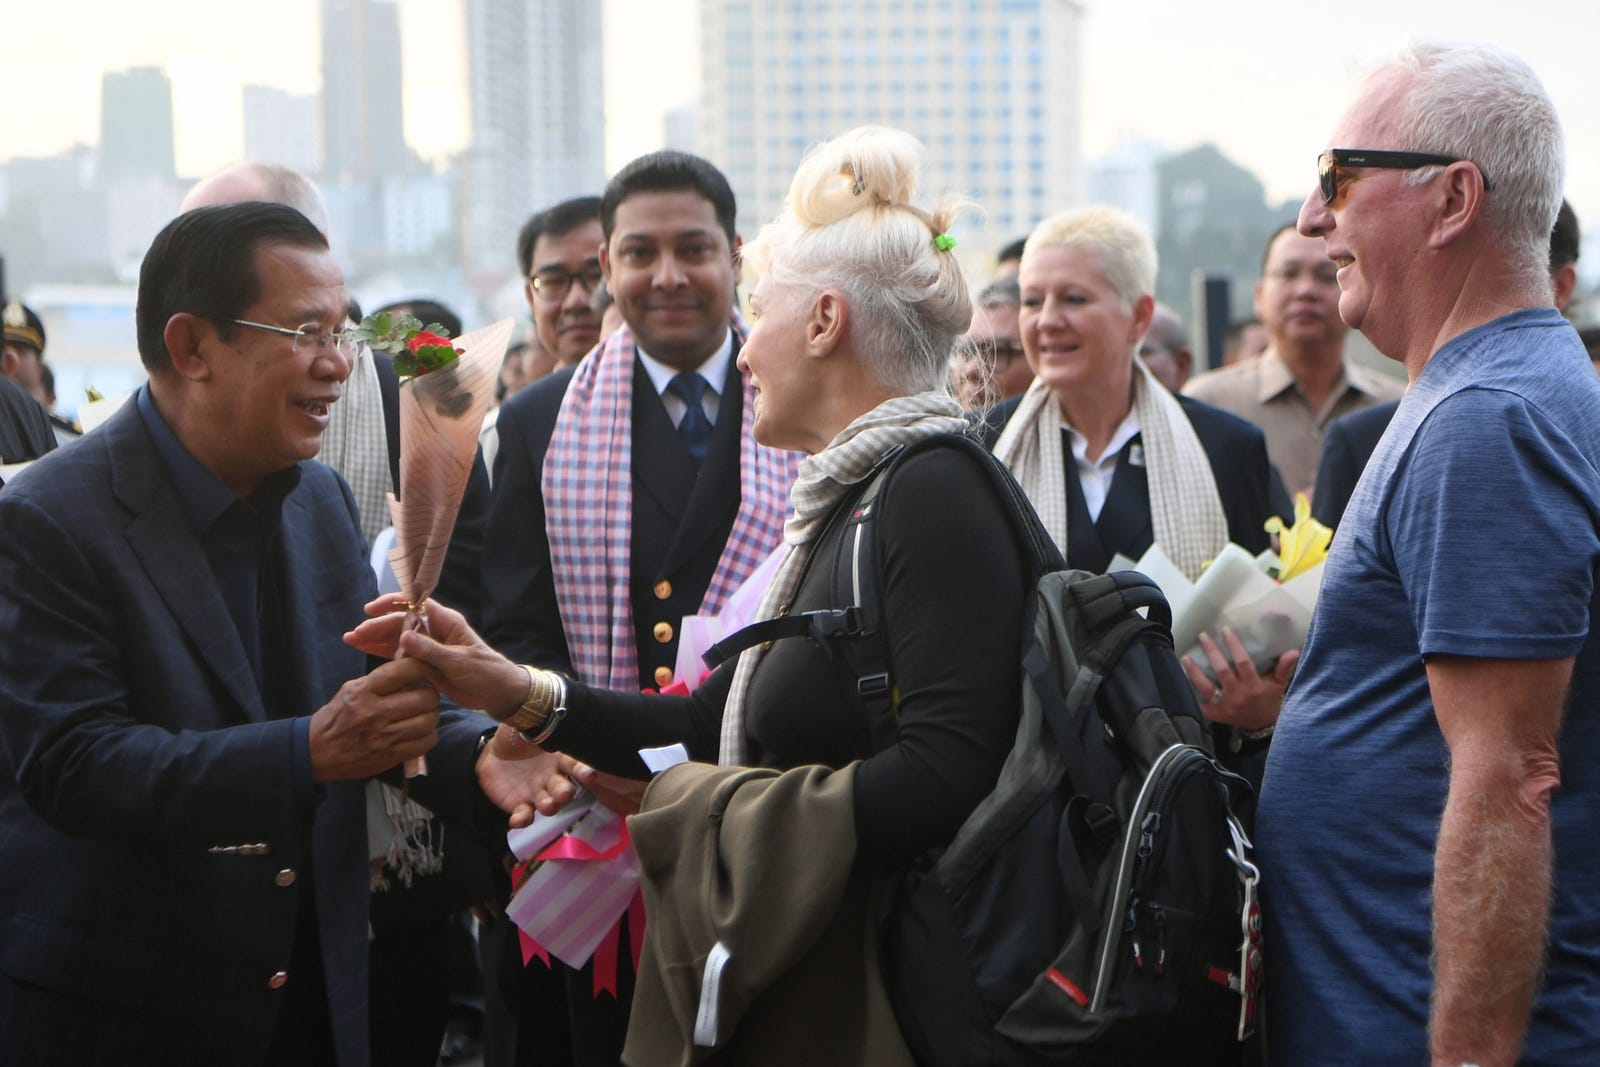 Cambodia's Prime Minister Hun Sen (left) meets passengers who disembarked from the Westerdam cruise ship in Sihanoukville on February 14, 2020.